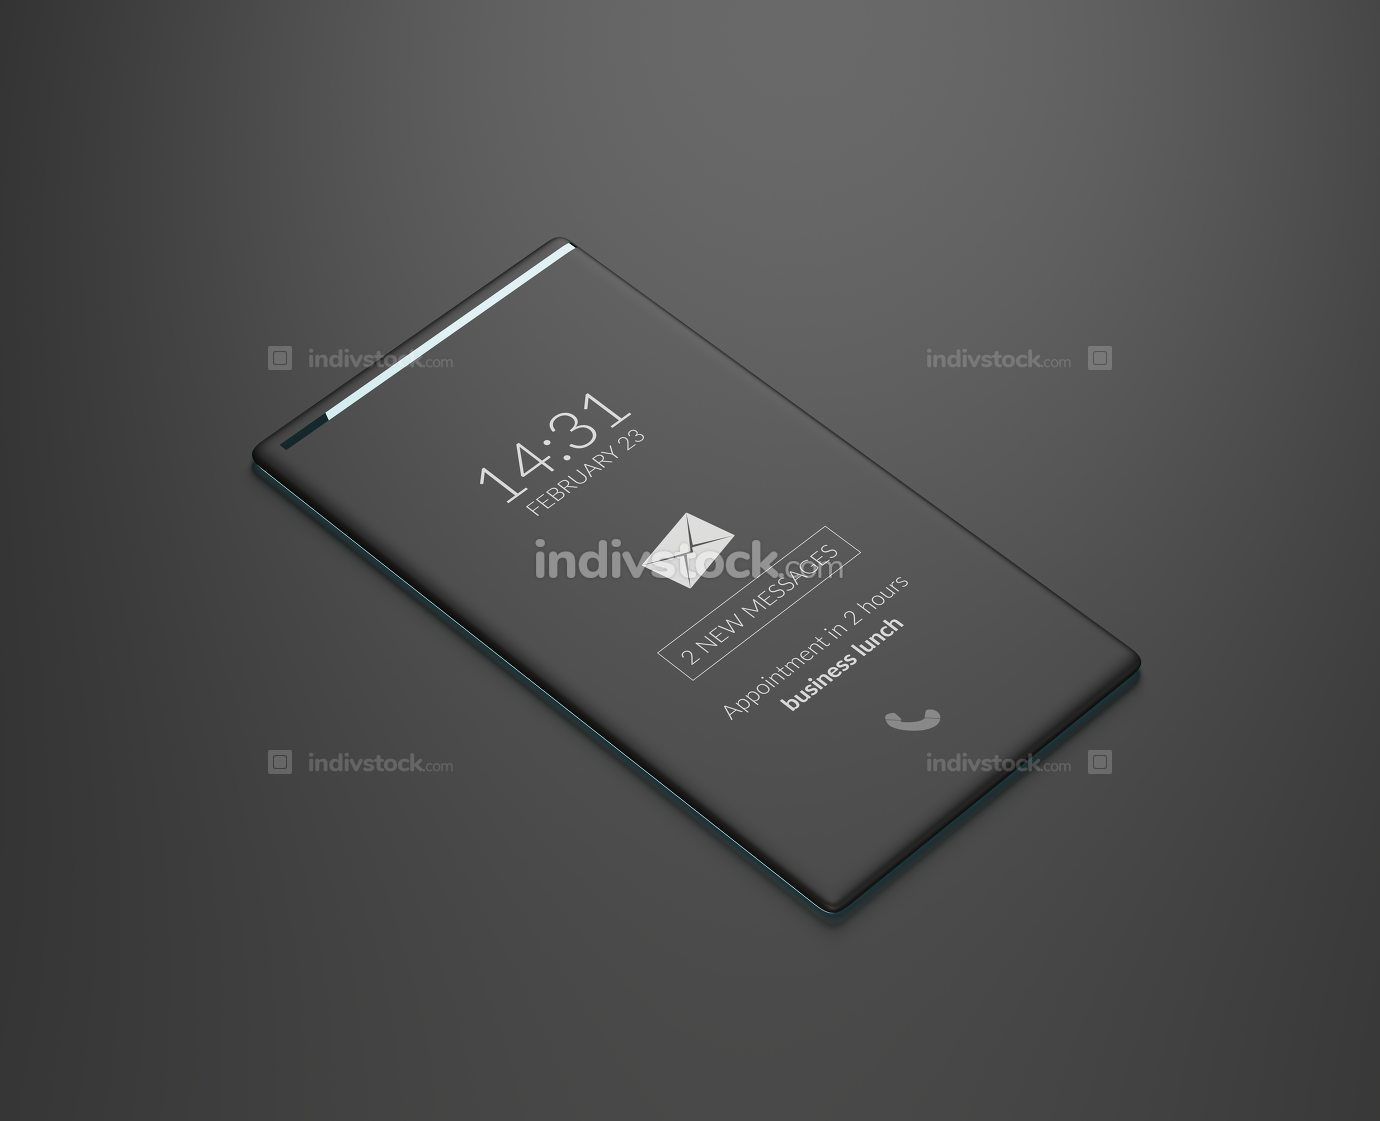 free download: mobile phone 3d-illustration